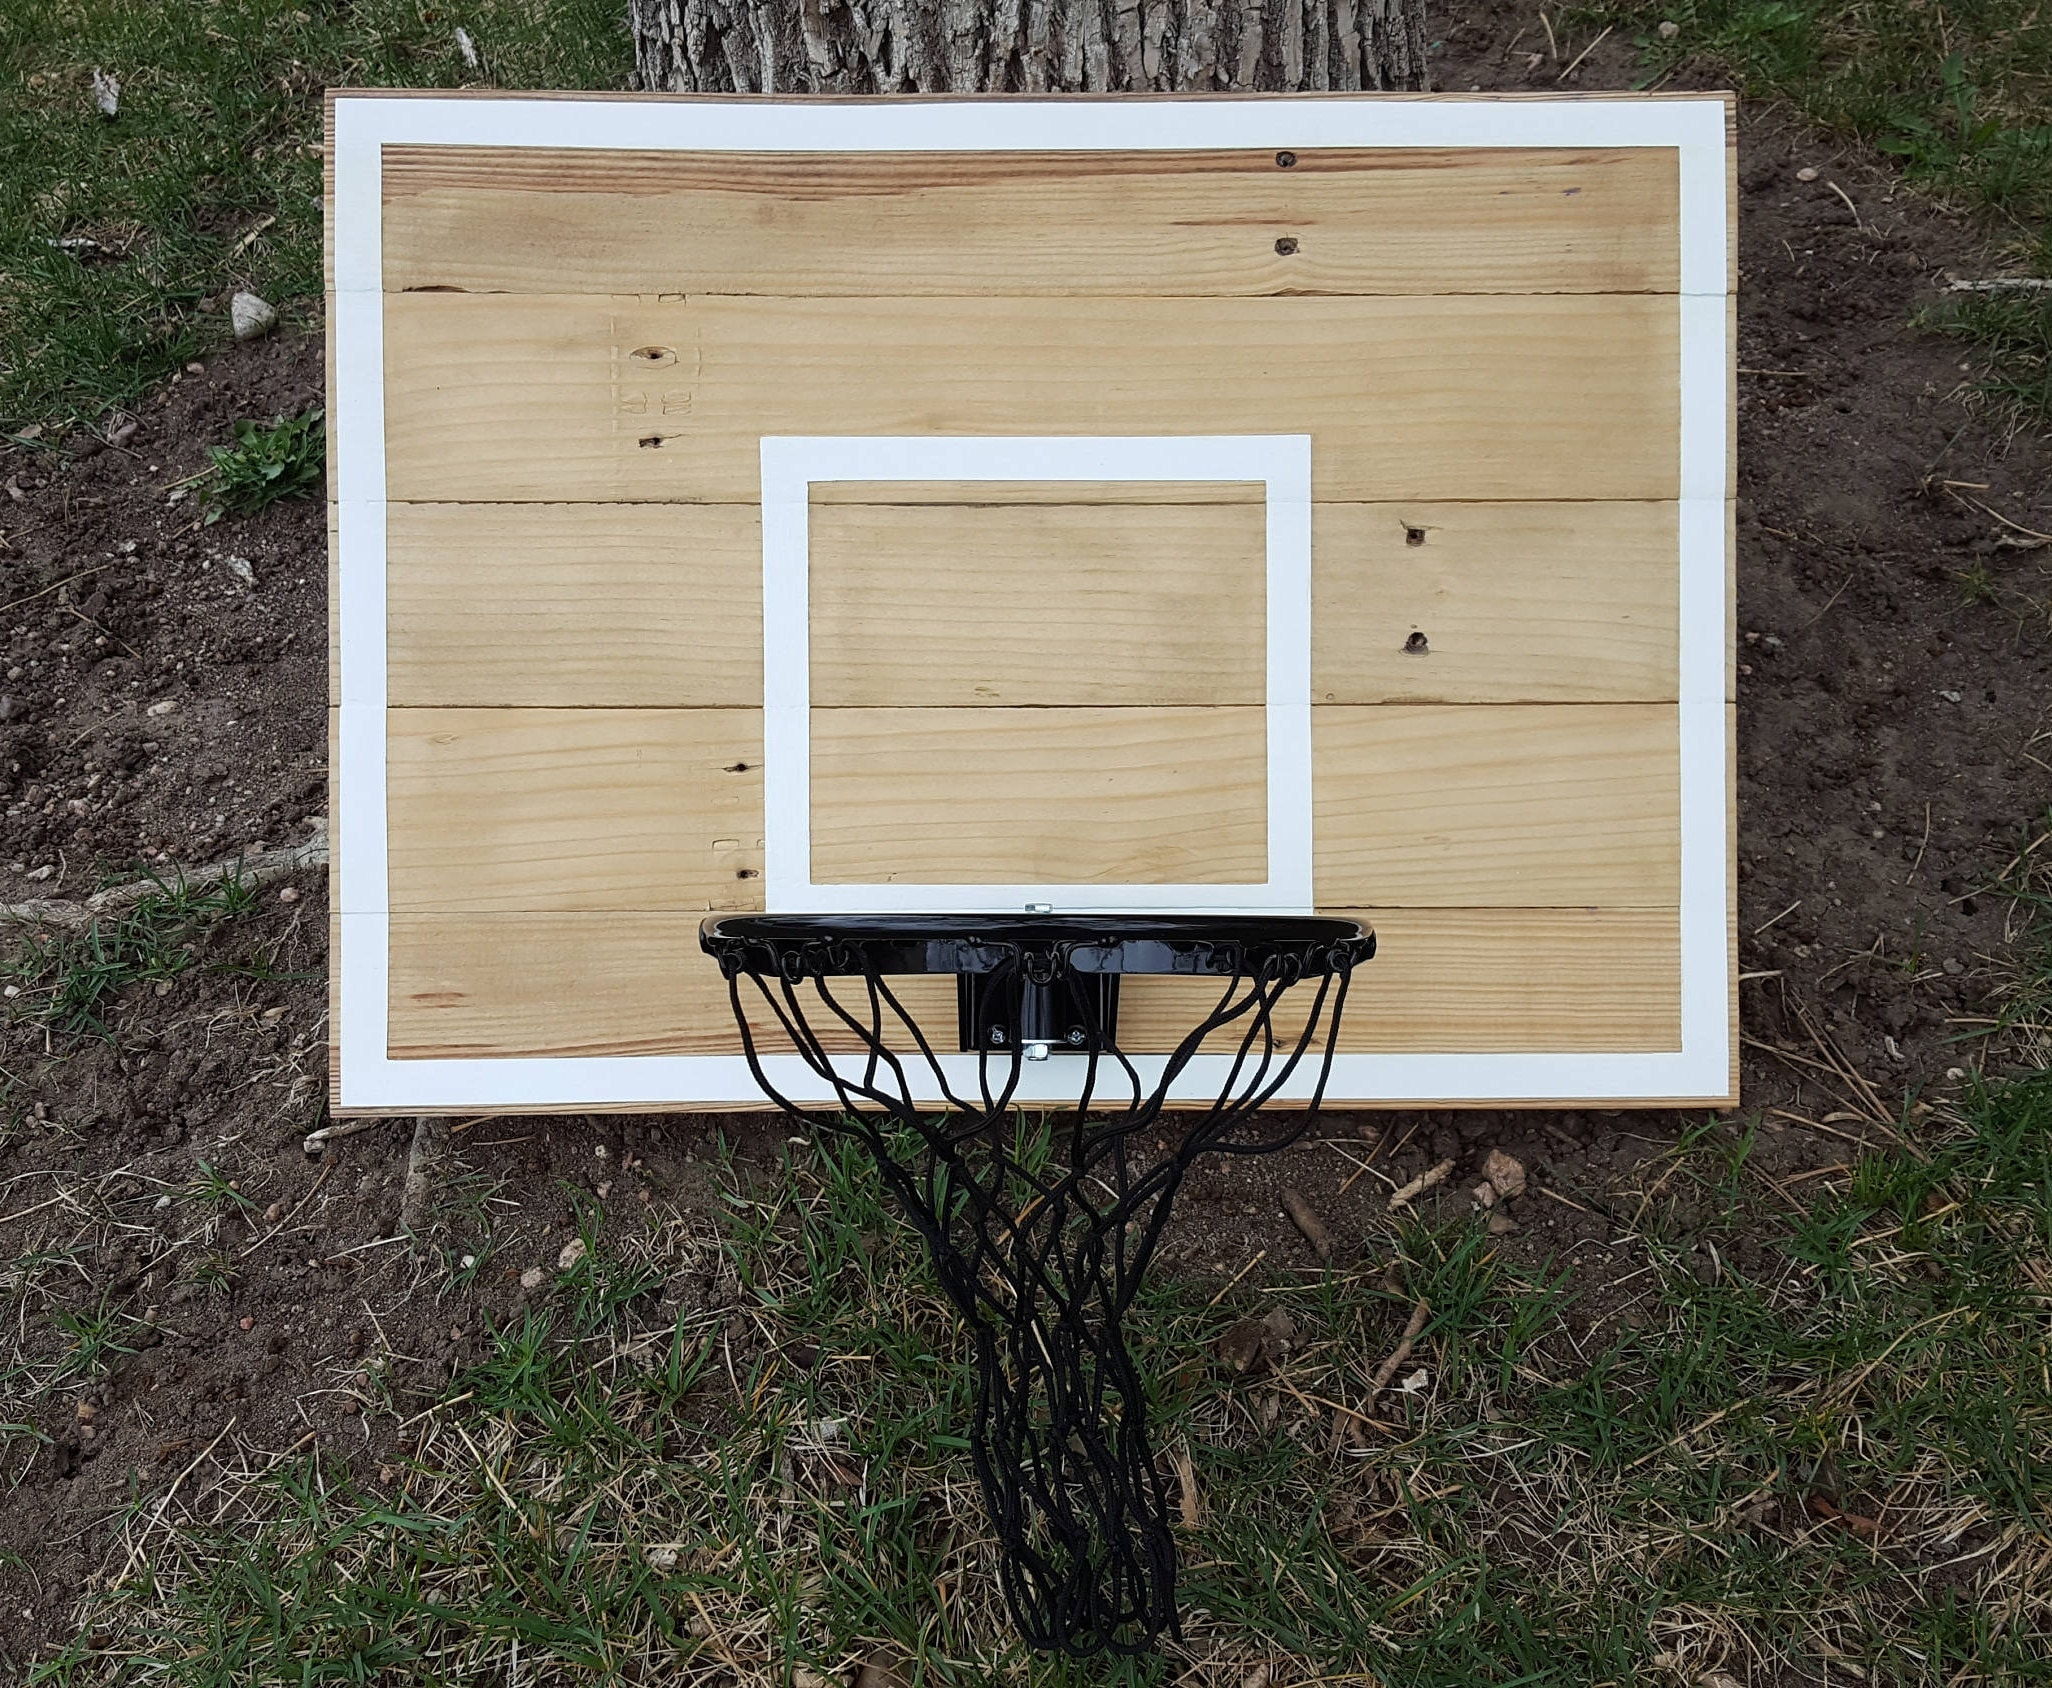 il_fullxfull.1214819642_5p3y Outdoor Home Basketball Hoop Plans on basketball hoop from the side, flowers outdoor, basketball hoop model, benches outdoor, basketball court, basketball hoop side angle, basketball hoop dimensions, basketball hoop front, games outdoor, basketball hoop background, basketball toys for toddlers, basketball hoop coloring pages, basketball hoop wallpaper, grills outdoor, basketball hoop set, lanterns outdoor,